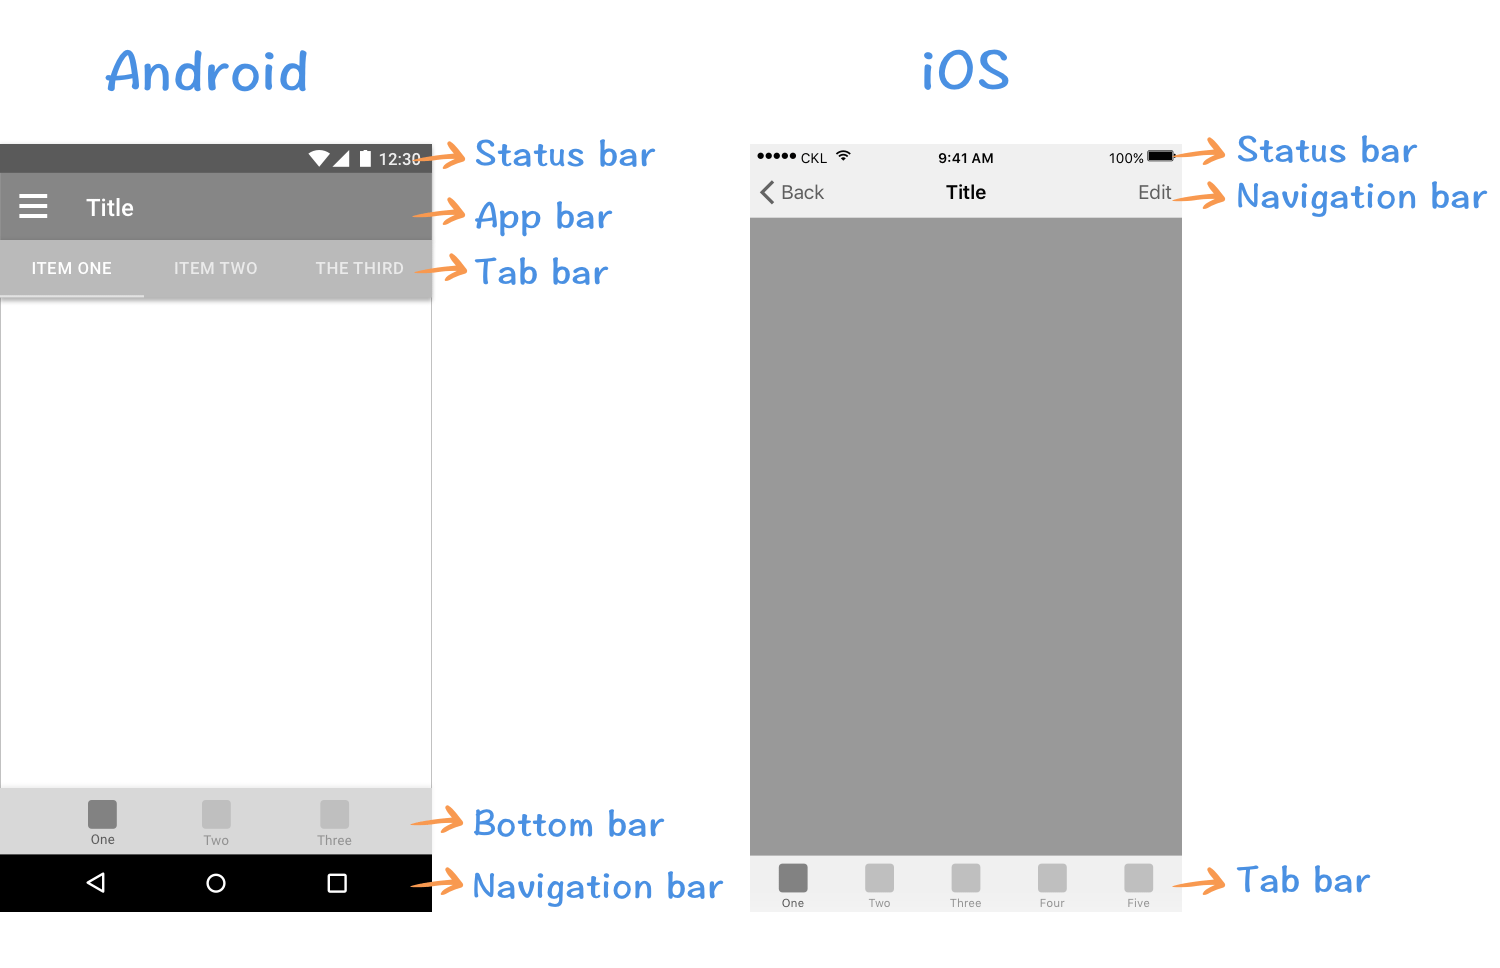 Designing native apps for Android and iOS: key differences